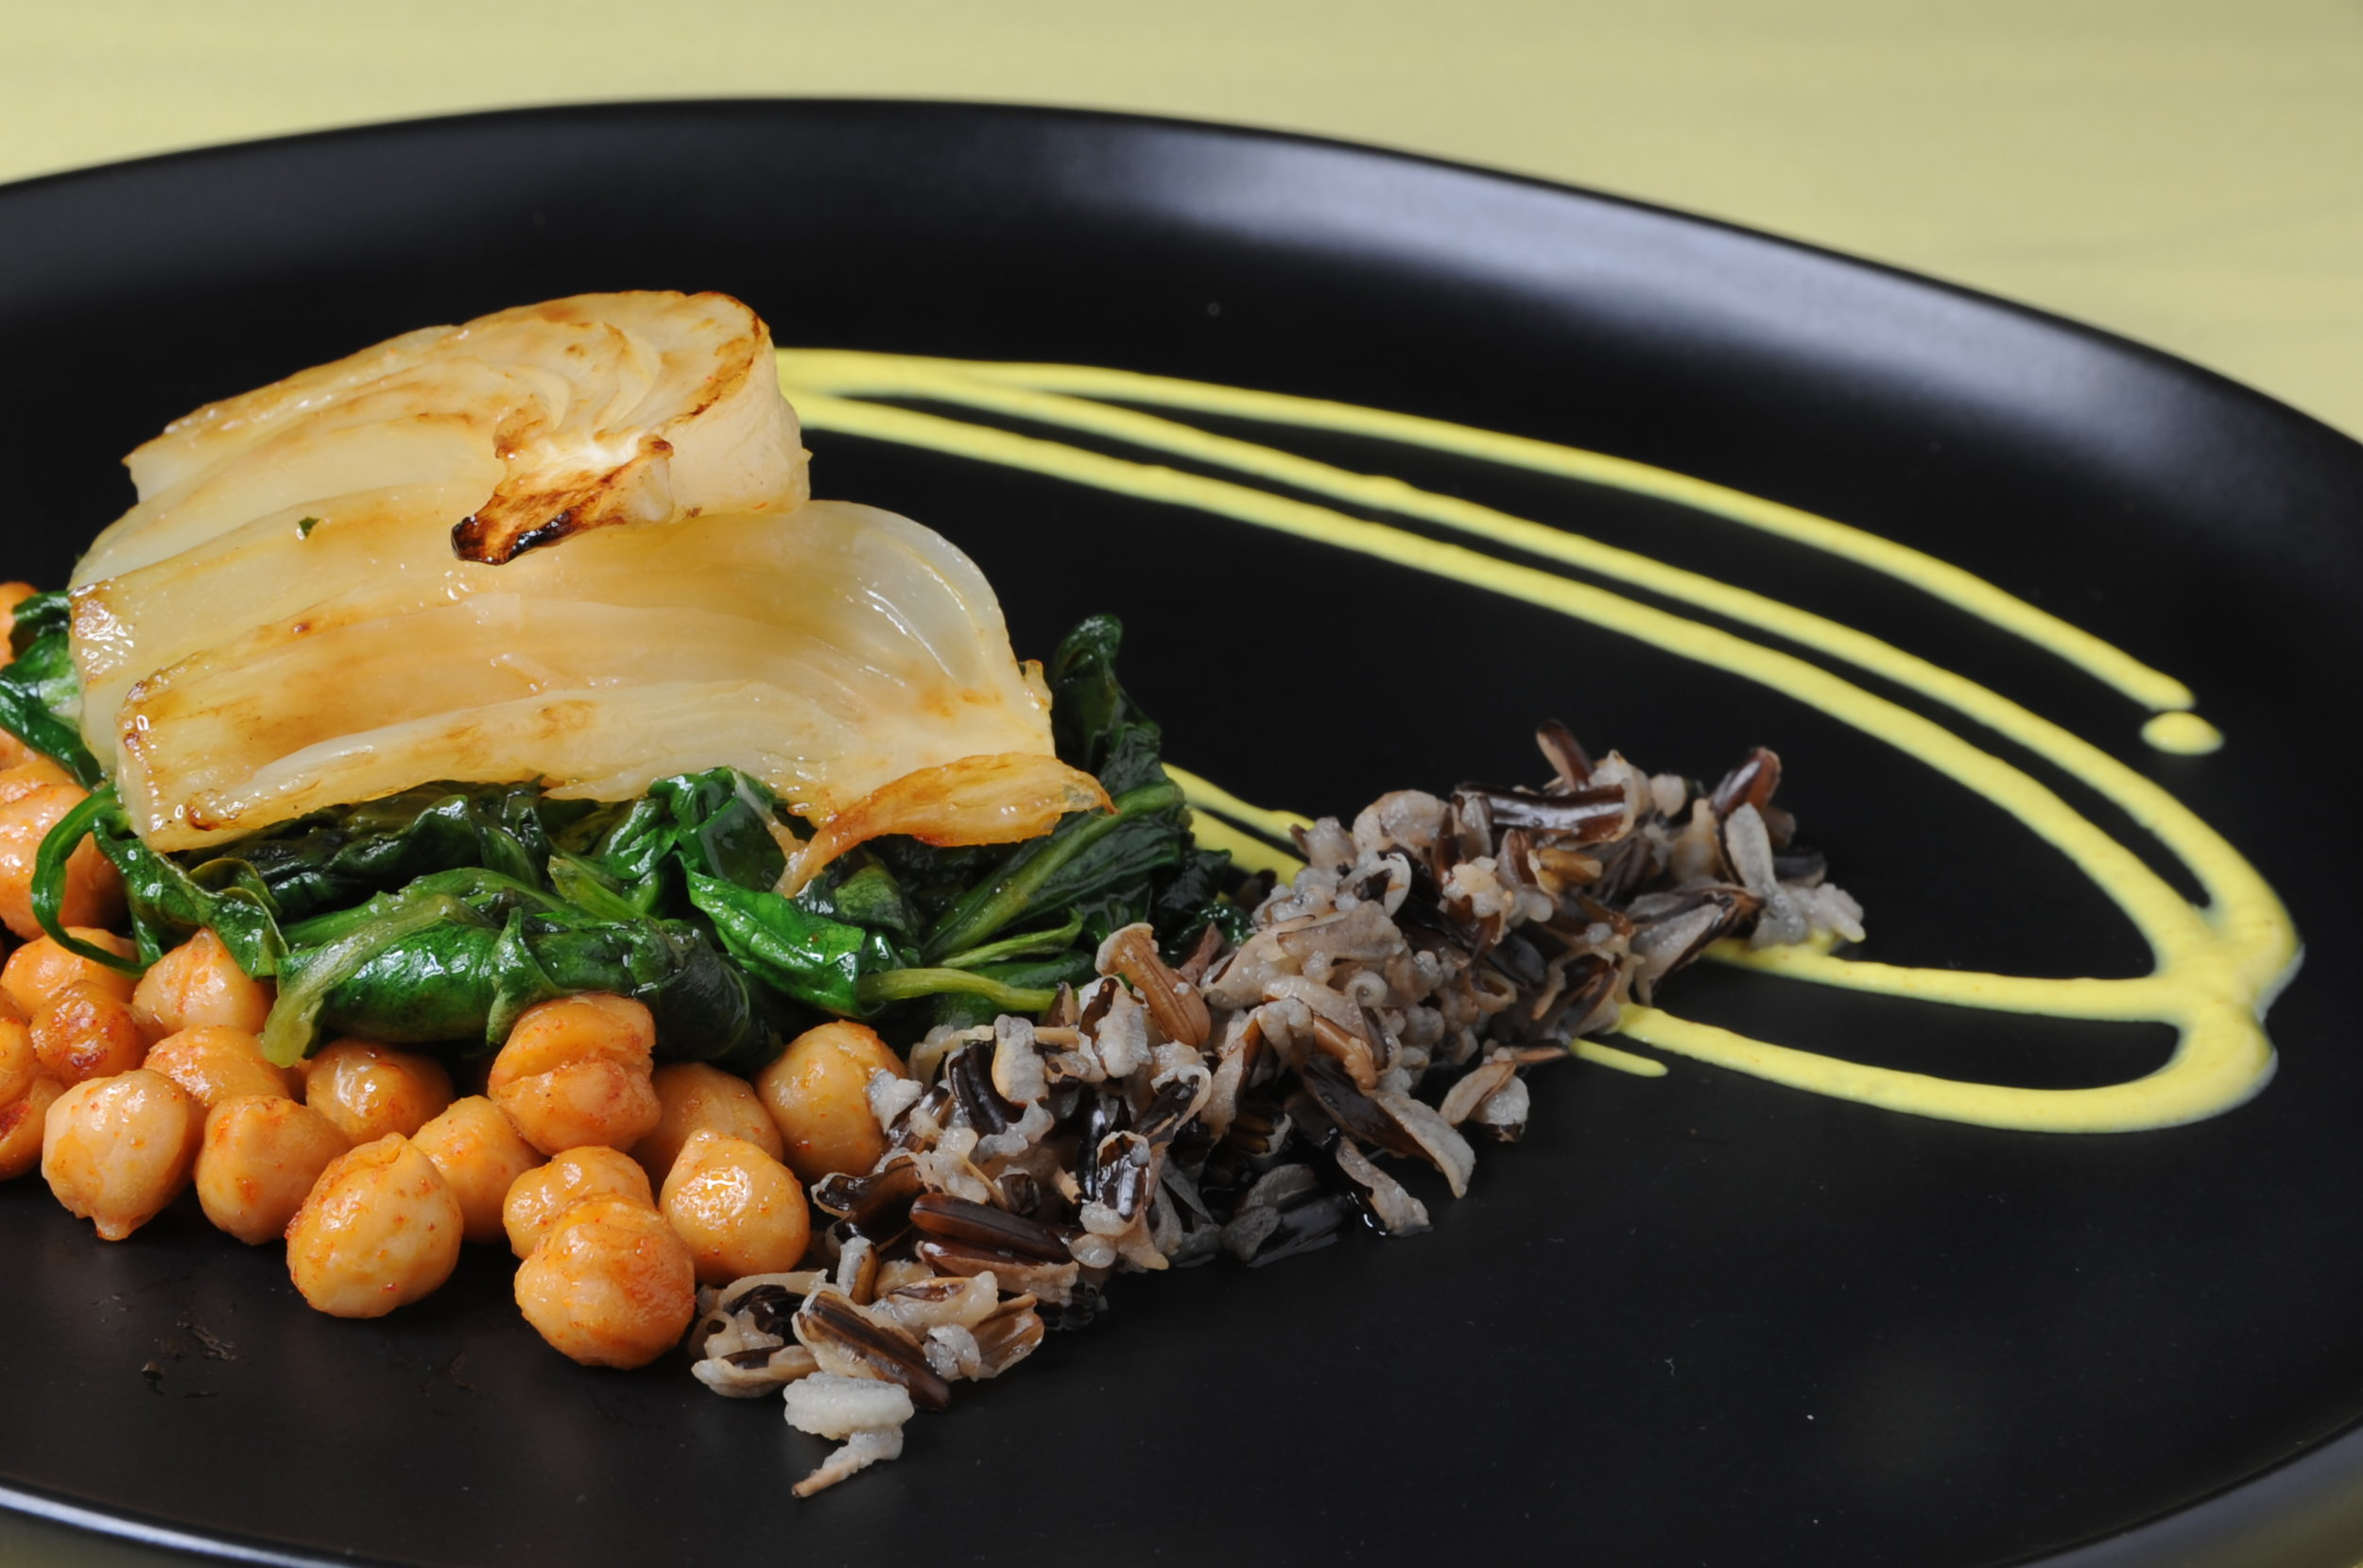 Braised Fennel, Roasted Chickpeas, Wilted Spinach with Coconut Curry